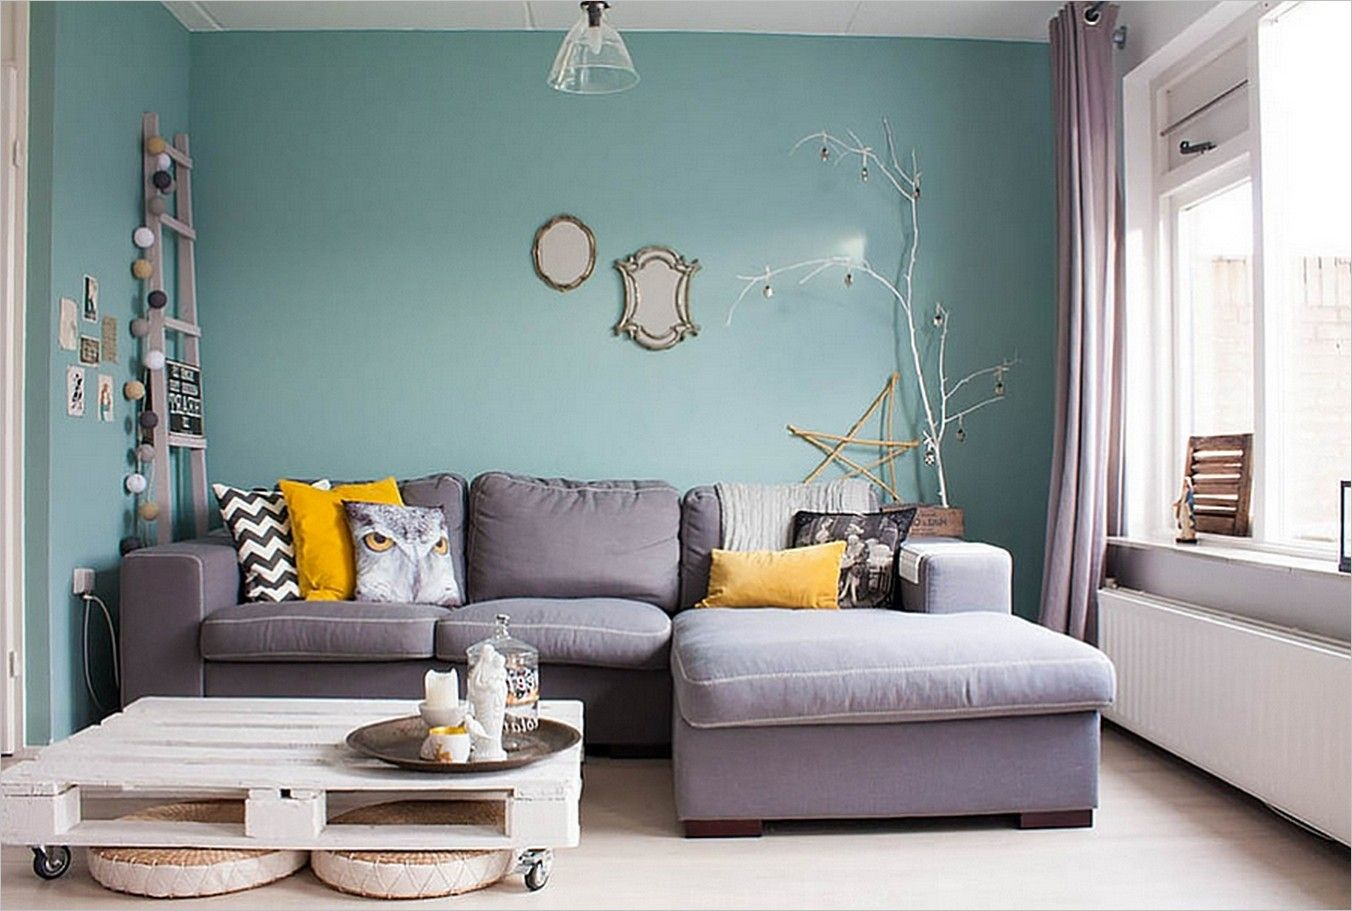 Lovely living room interior desig with blue wall paint for Interior paint design ideas for living rooms